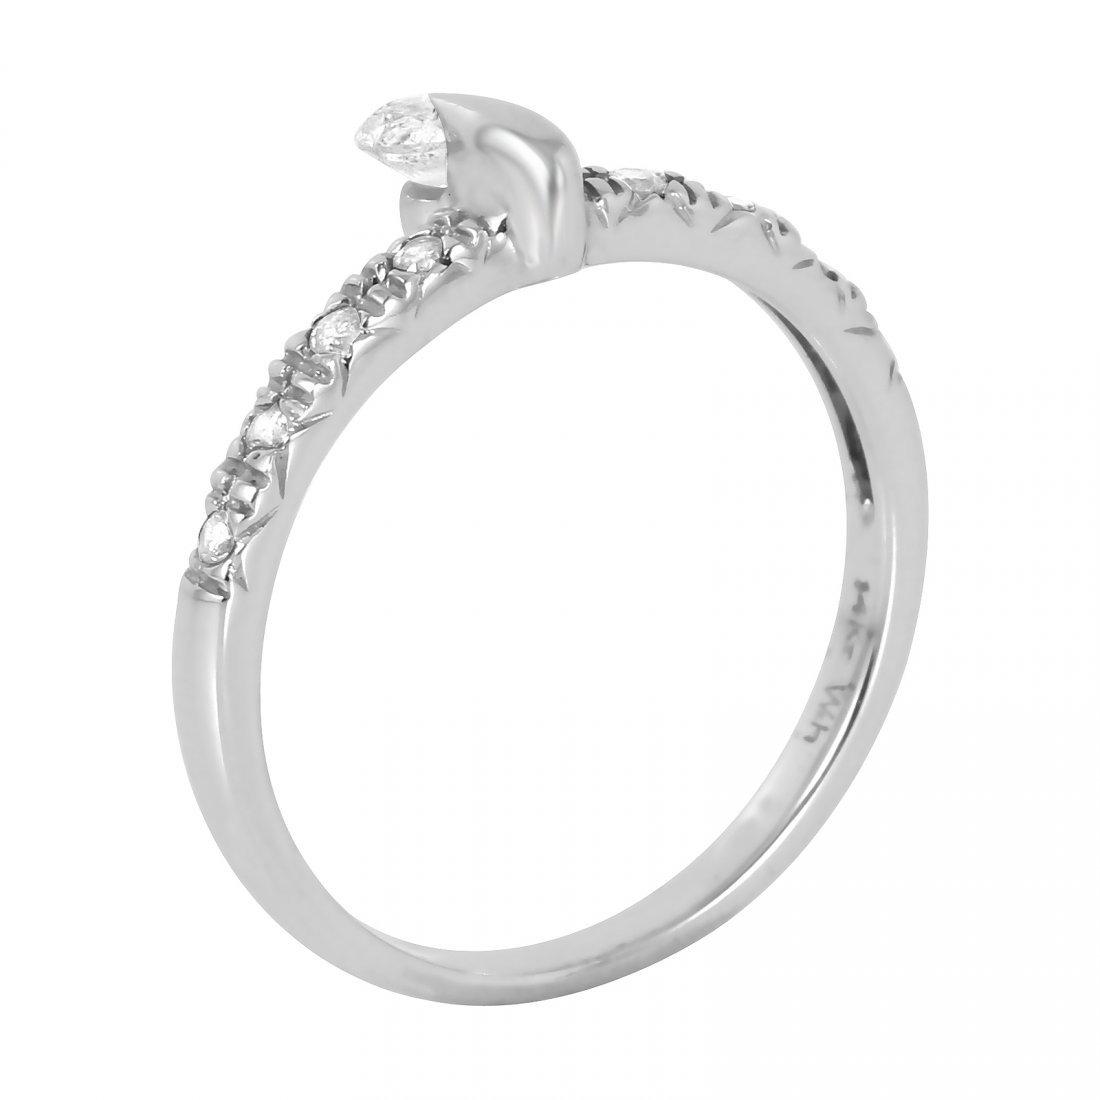 14KT White Gold Diamond Ring, 0.18 ctw - 2